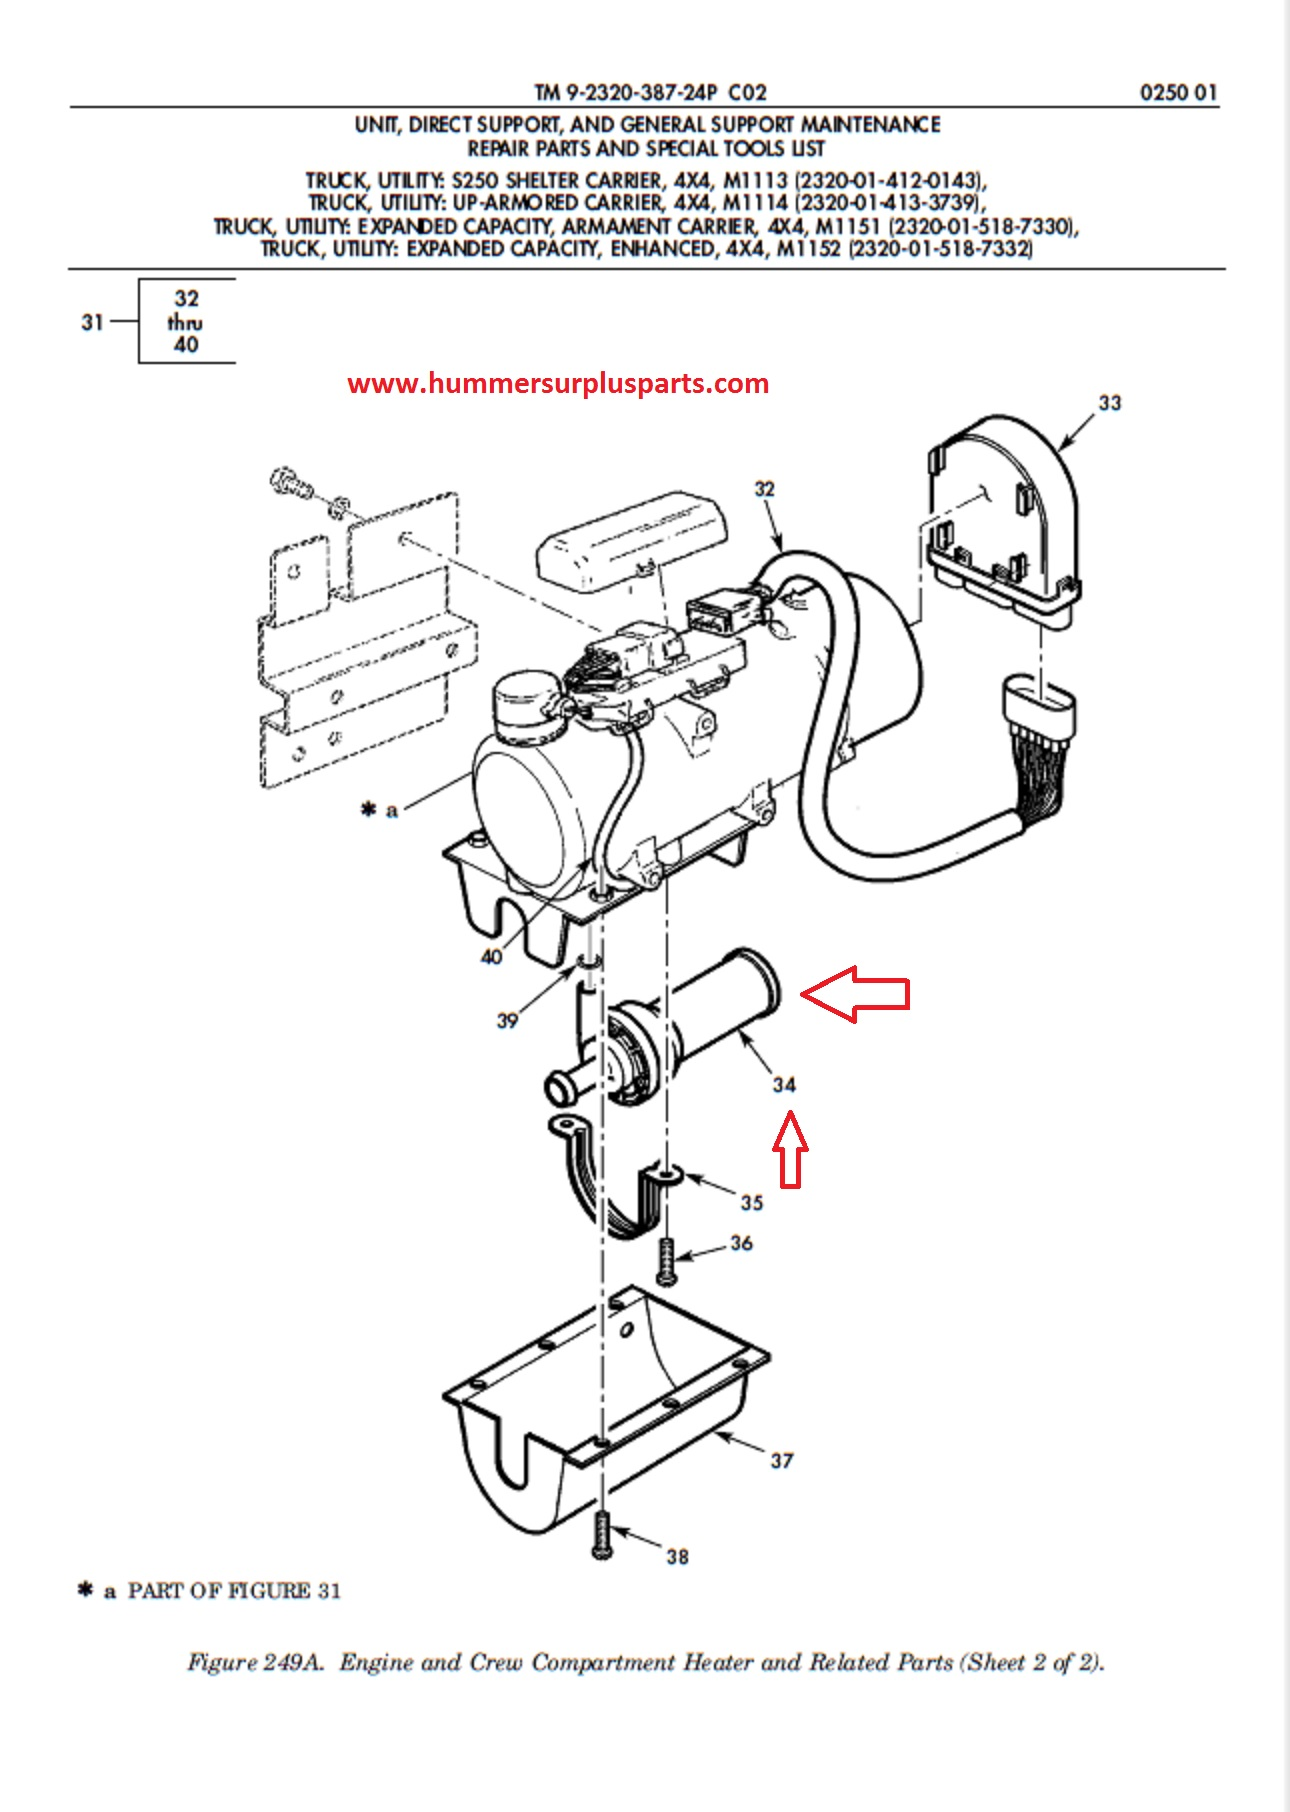 6 Duramax Fuel System Diagram Wiring And Fuse Box 2007 Gmc E46 Schematic Also 2004 Injector Further Fan Switch For